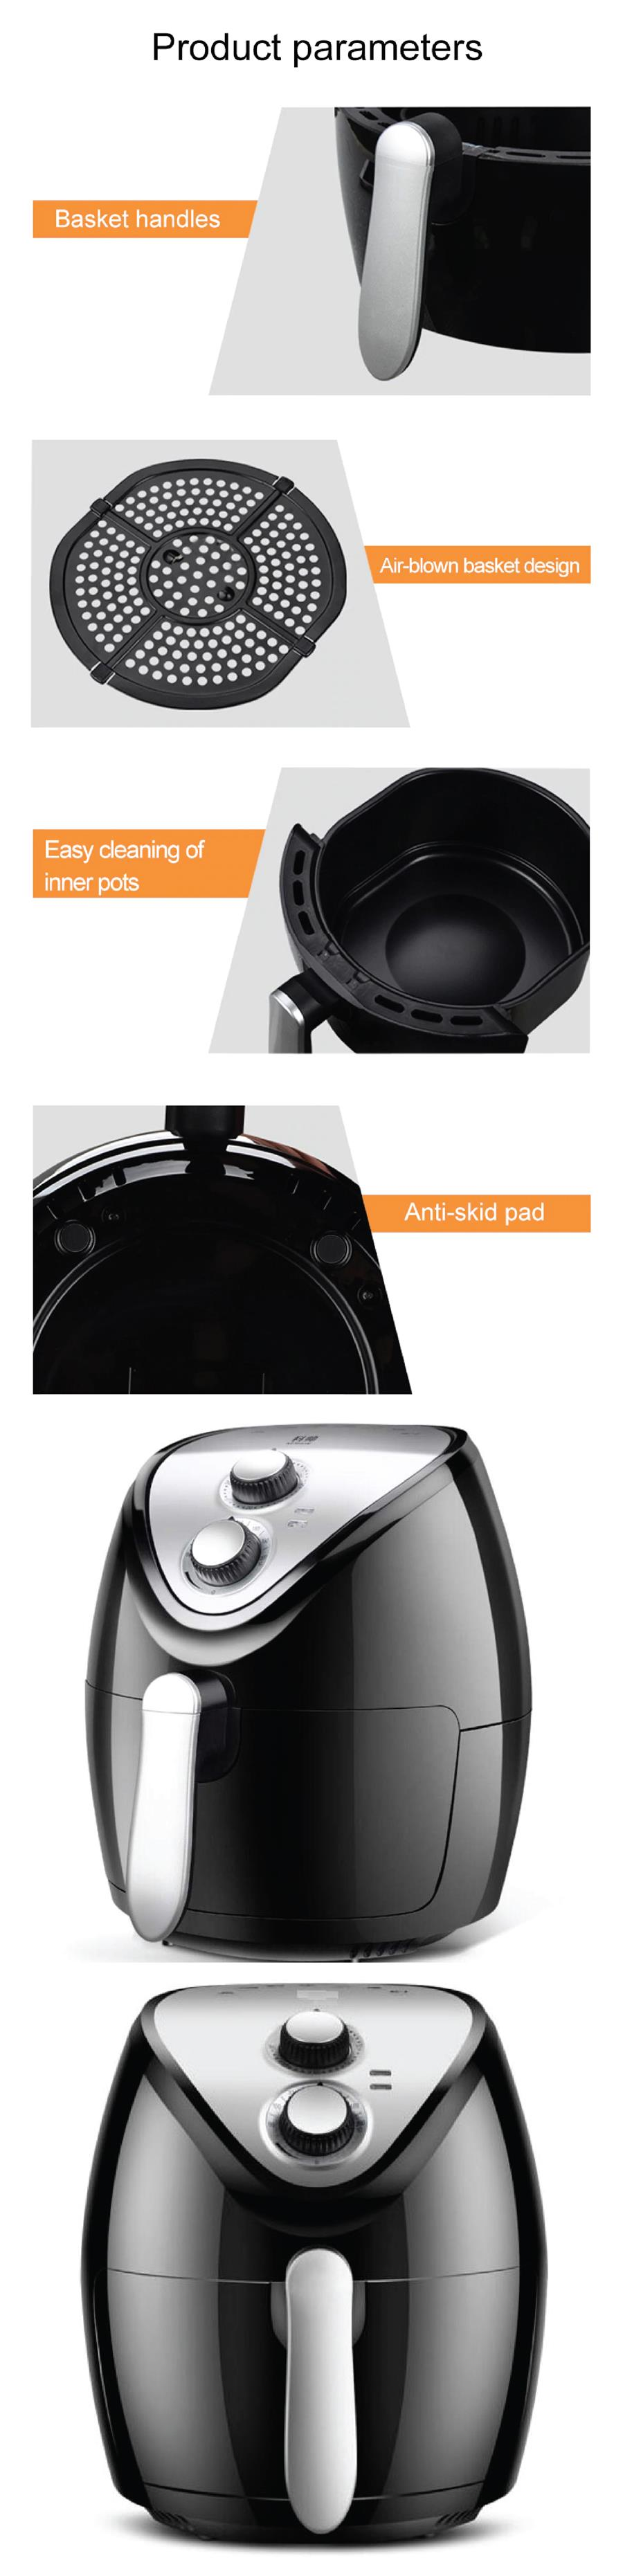 Ke Shuai AF107 Electric Air Fryer Healthy Fried Food 3.5L Oil Free